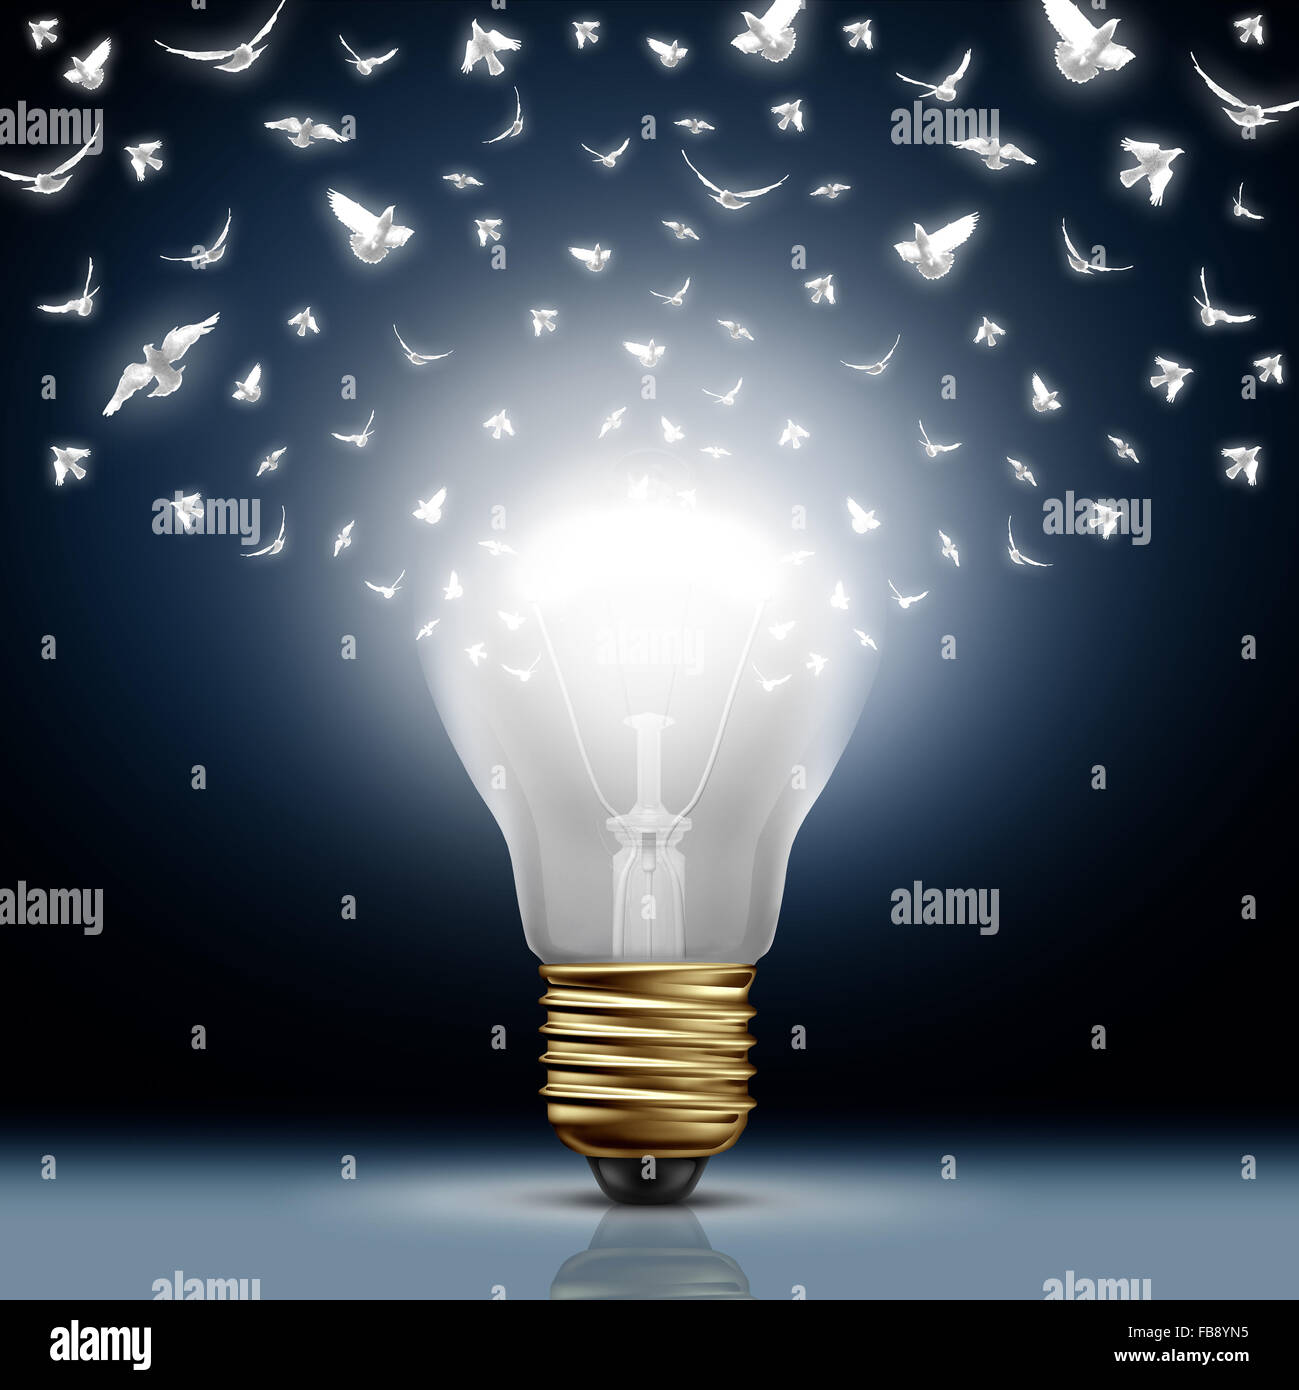 Creative start concept as a bright illuminated light bulb transforming to white flying birds as a digital messaging - Stock Image